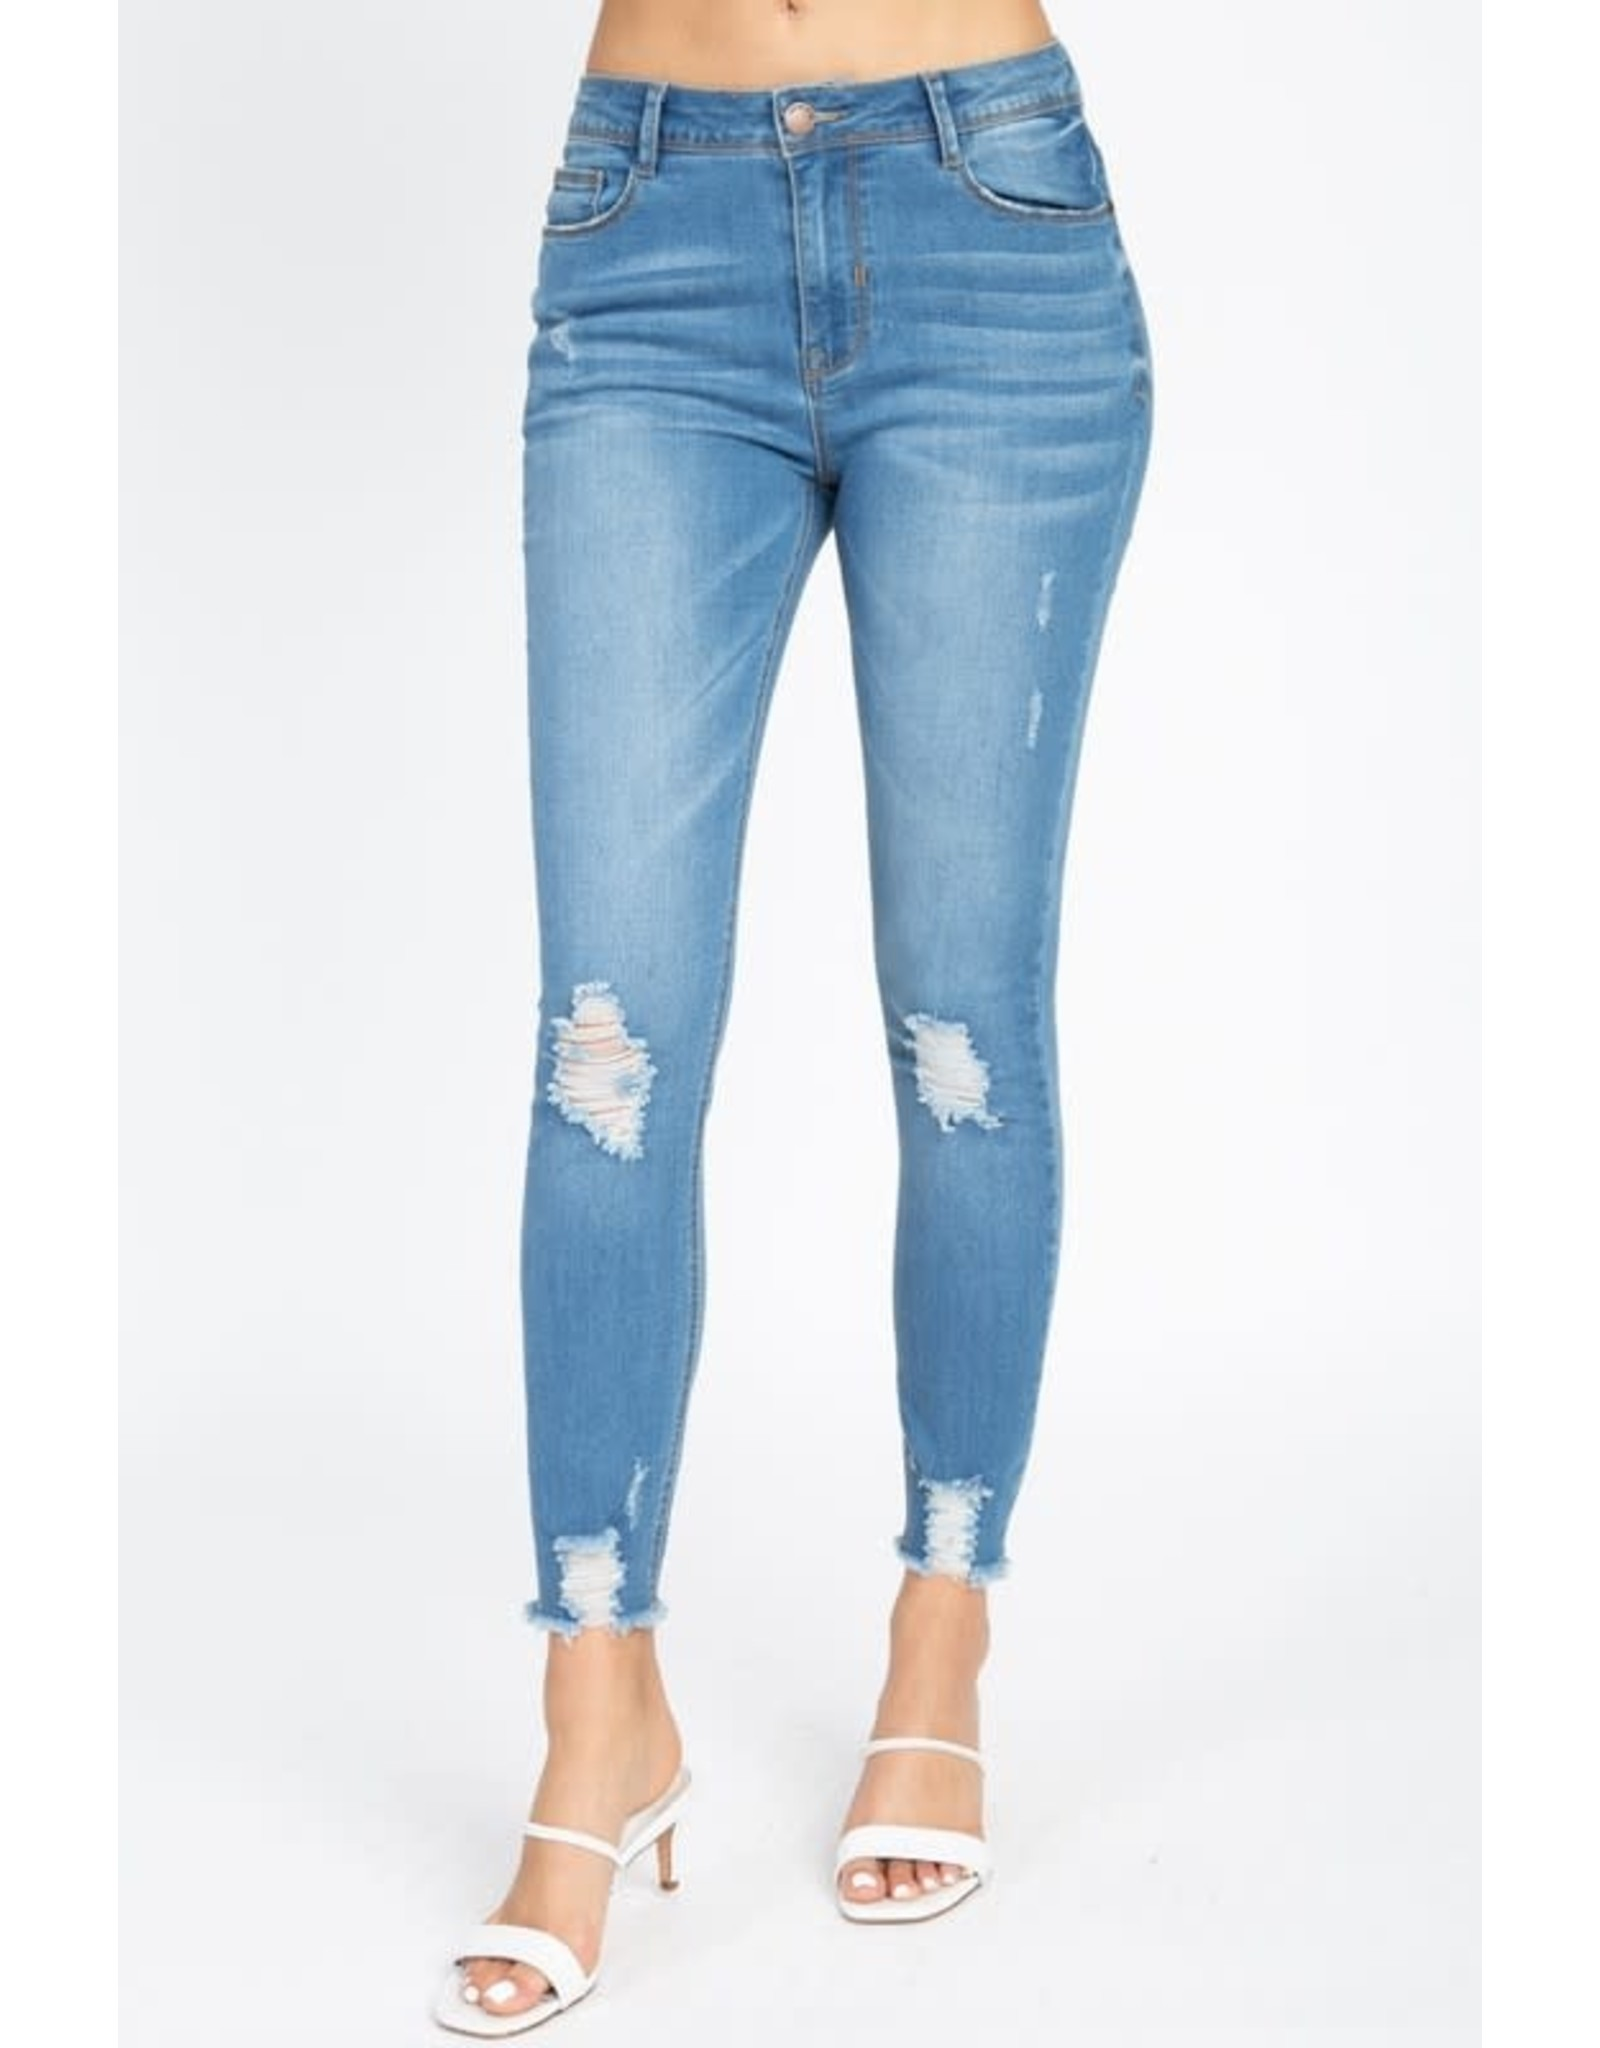 The Ritzy Gypsy MAYFAIR Distressed Jean